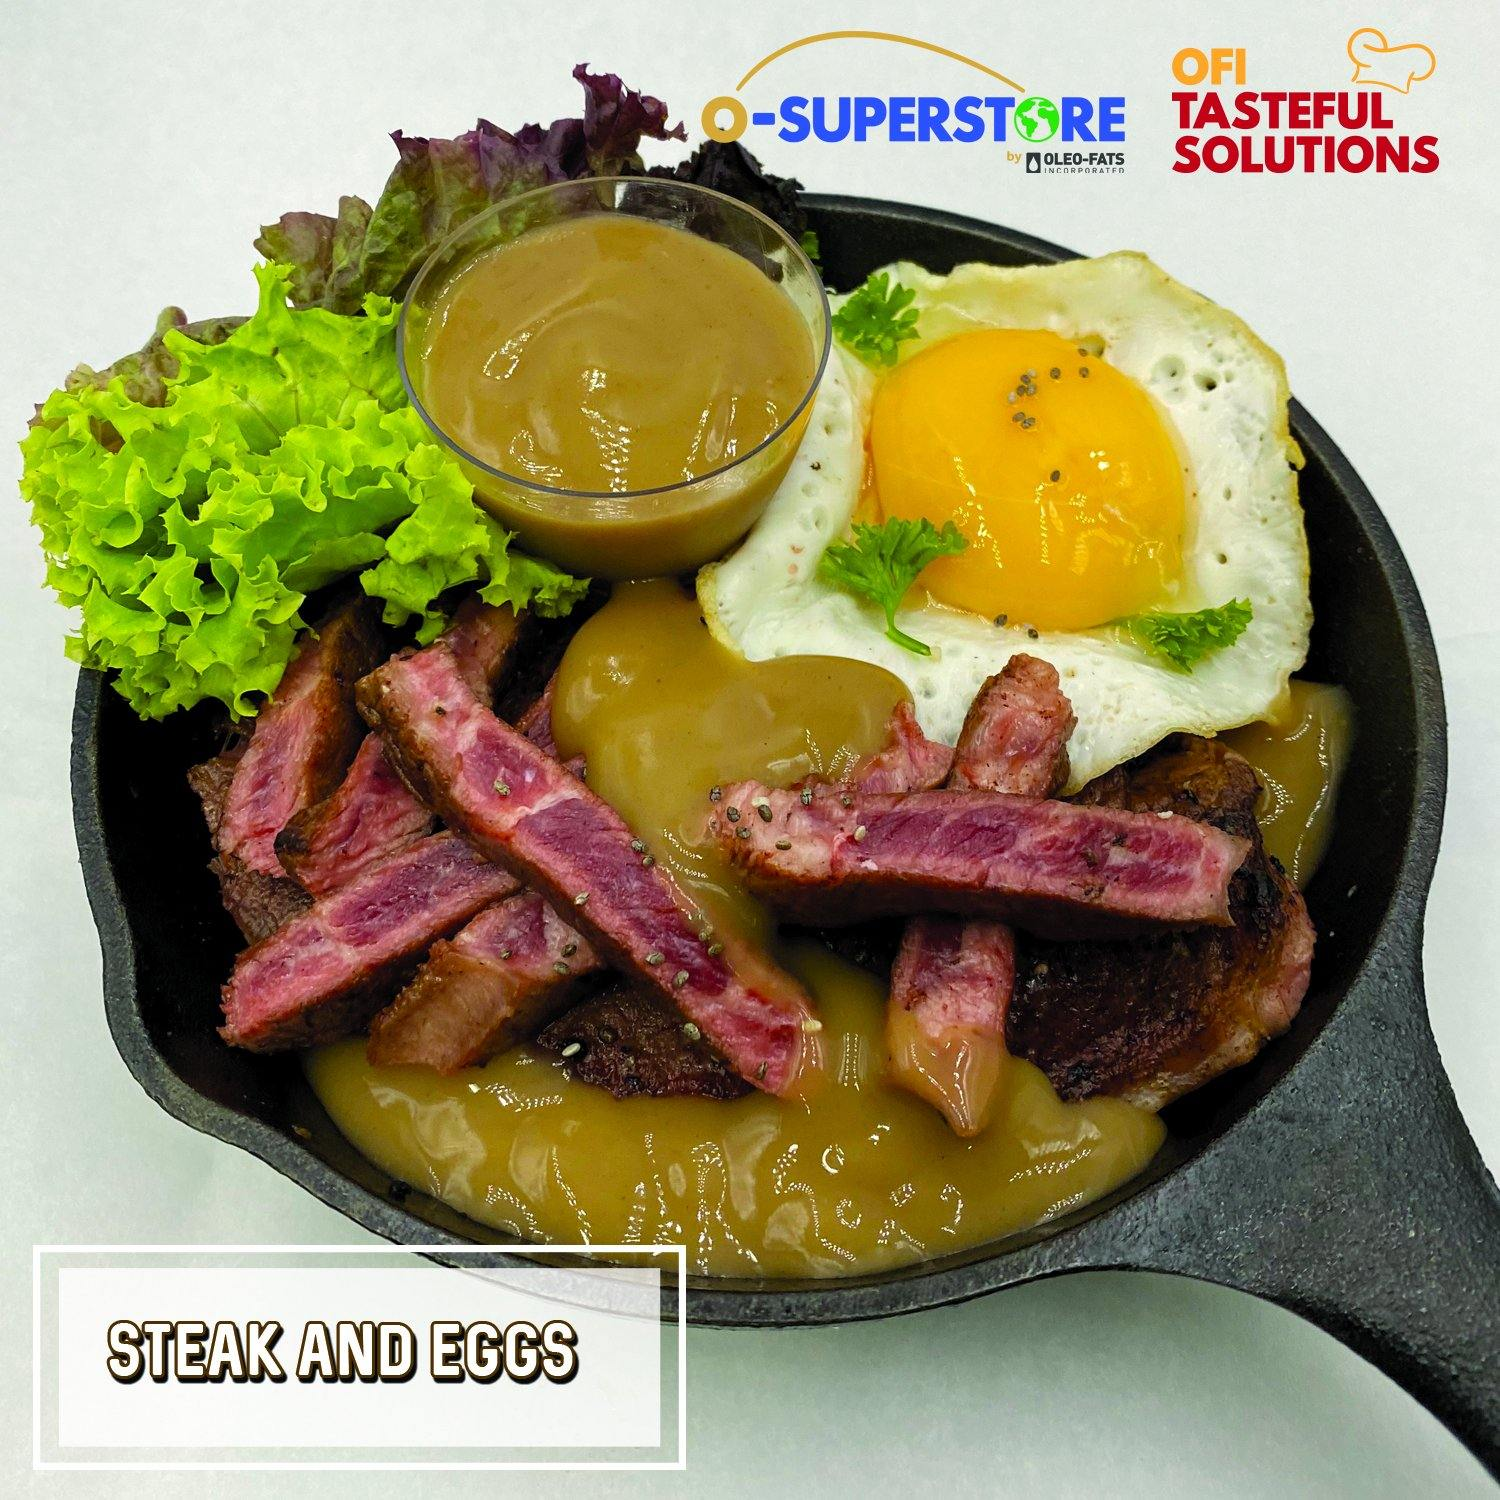 Steak and Eggs - O-SUPERSTORE